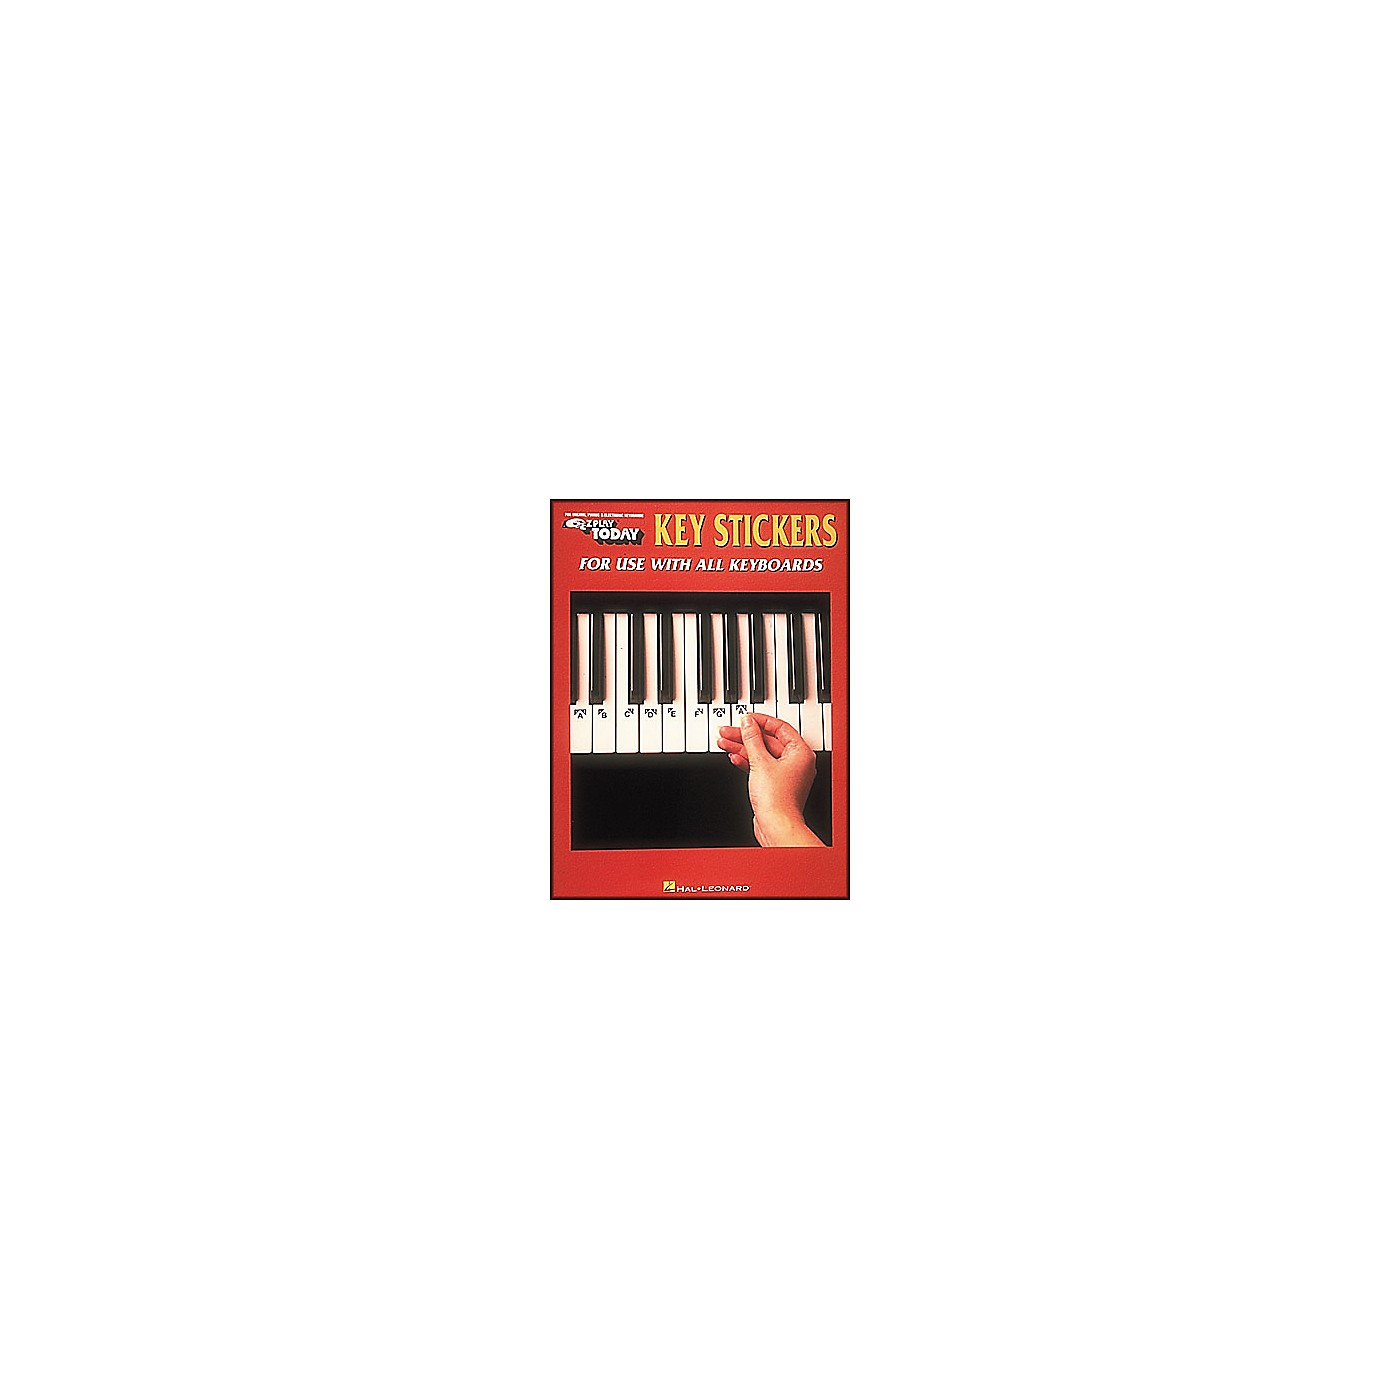 Hal Leonard E-Z Play Key Stickers for Use with All Keyboards thumbnail